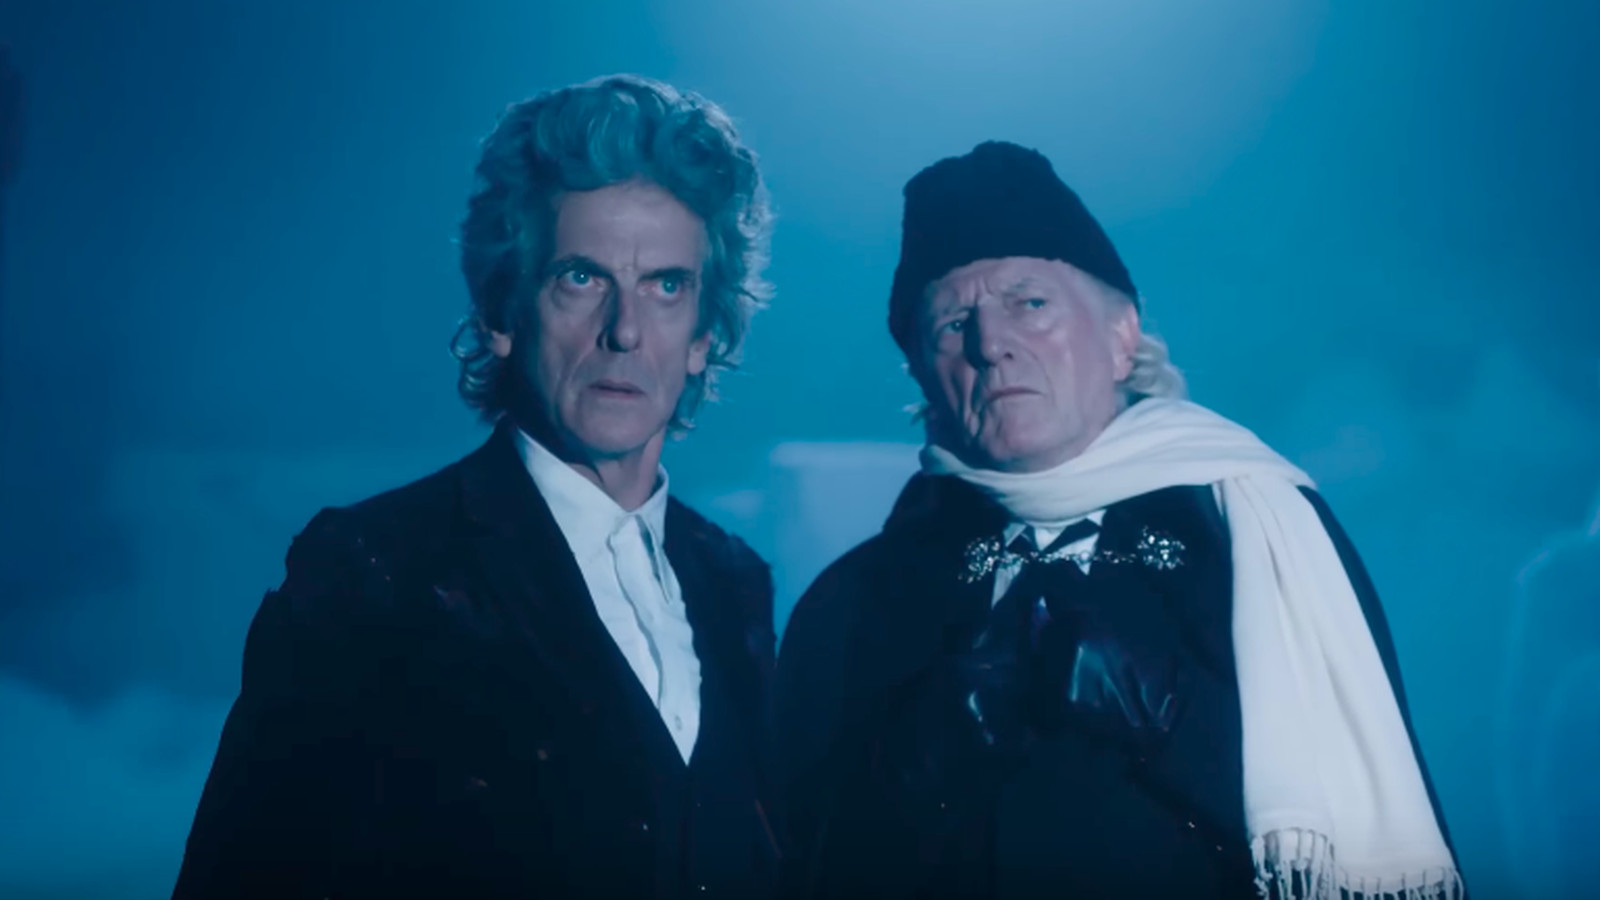 The First and Twelfth Doctors team up in this Doctor Who Christmas ...